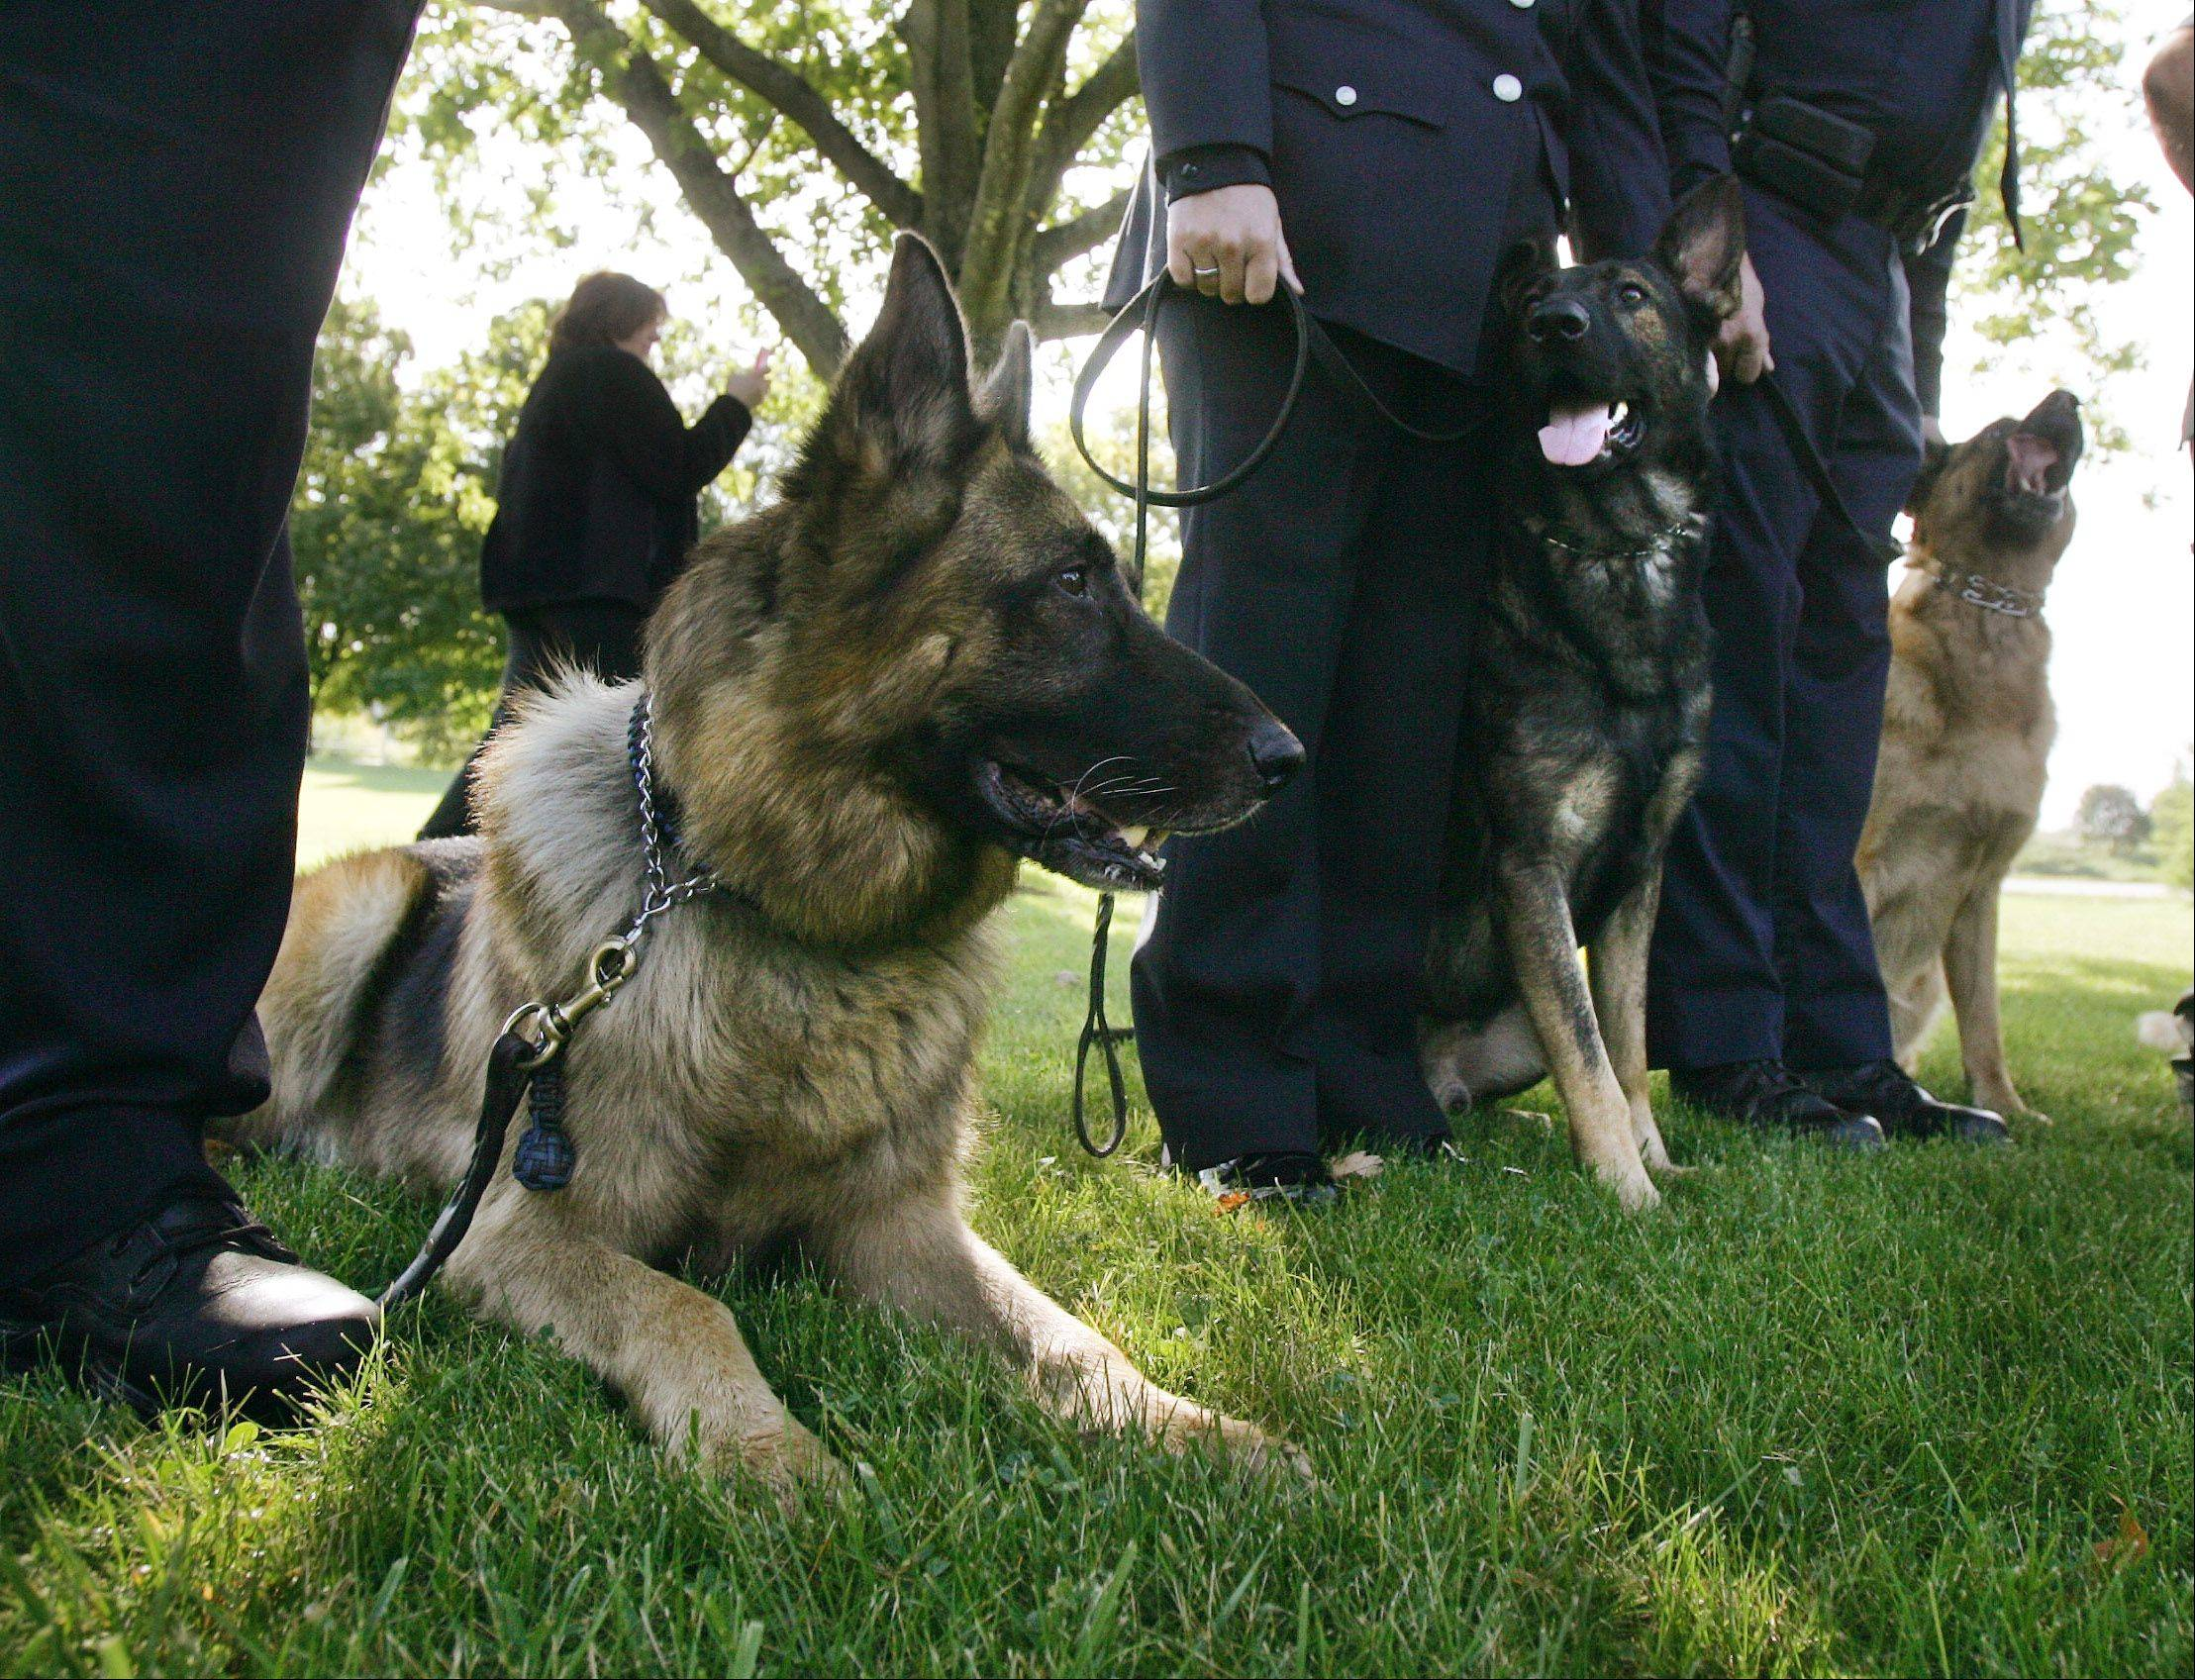 Regional police dog memorial unveiled at cemetery near Gurnee